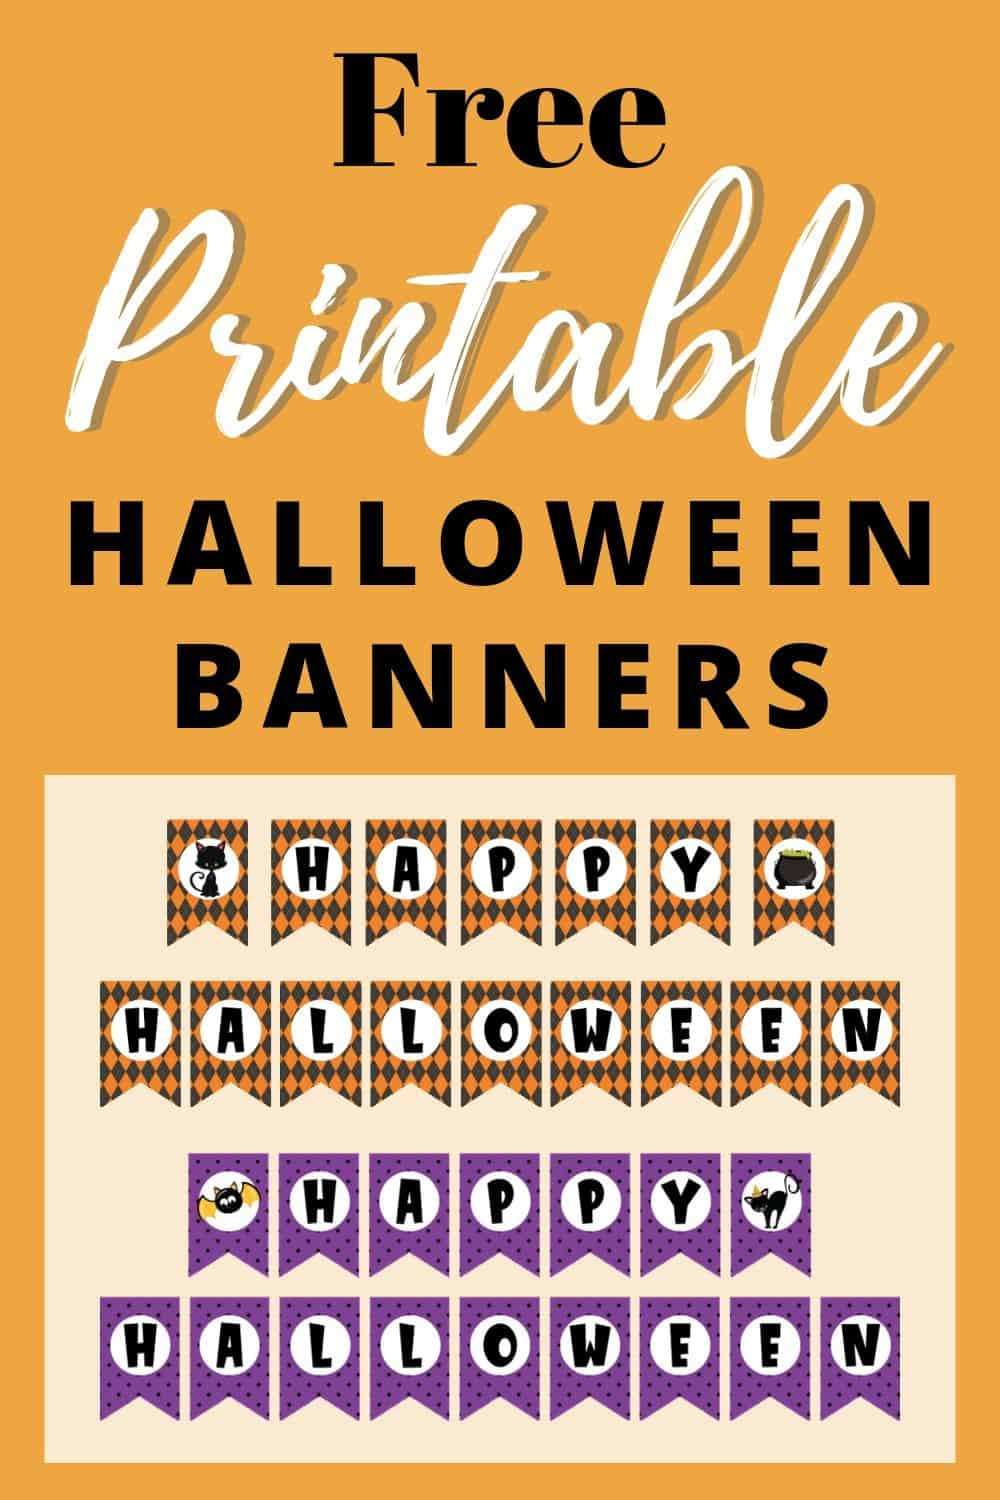 Free Printable Halloween Banner The Artisan Life